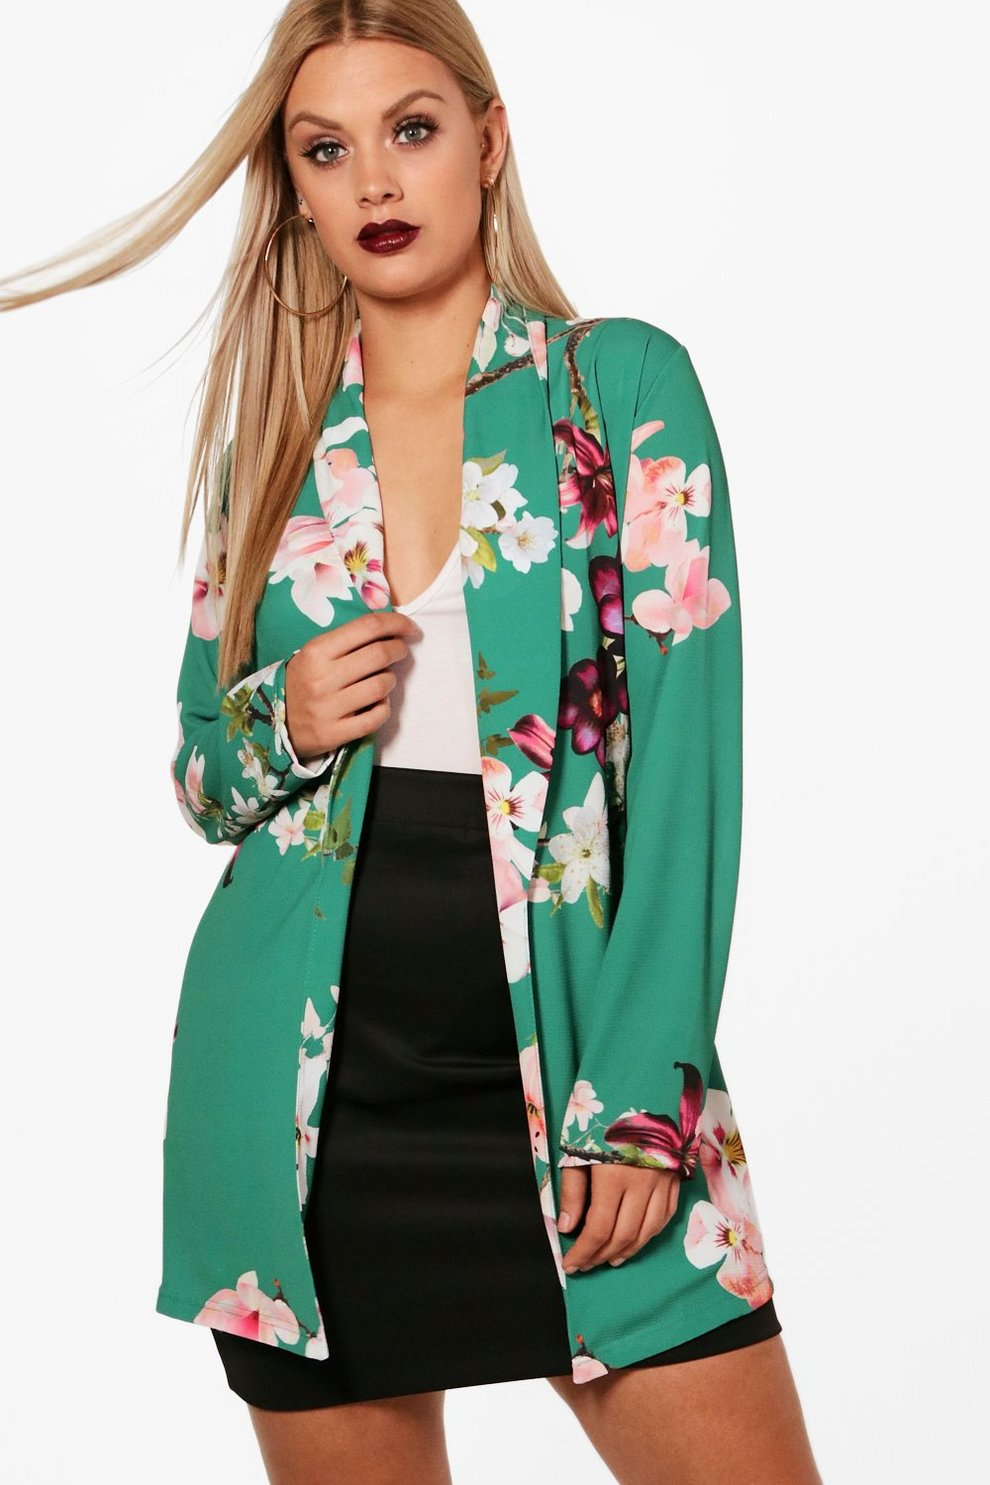 Ebay Boohoo Plus Oriental Belted Blazer Free Shipping Release Dates Discount Visit Footlocker Finishline Online Free Shipping Find Great x71yAQs